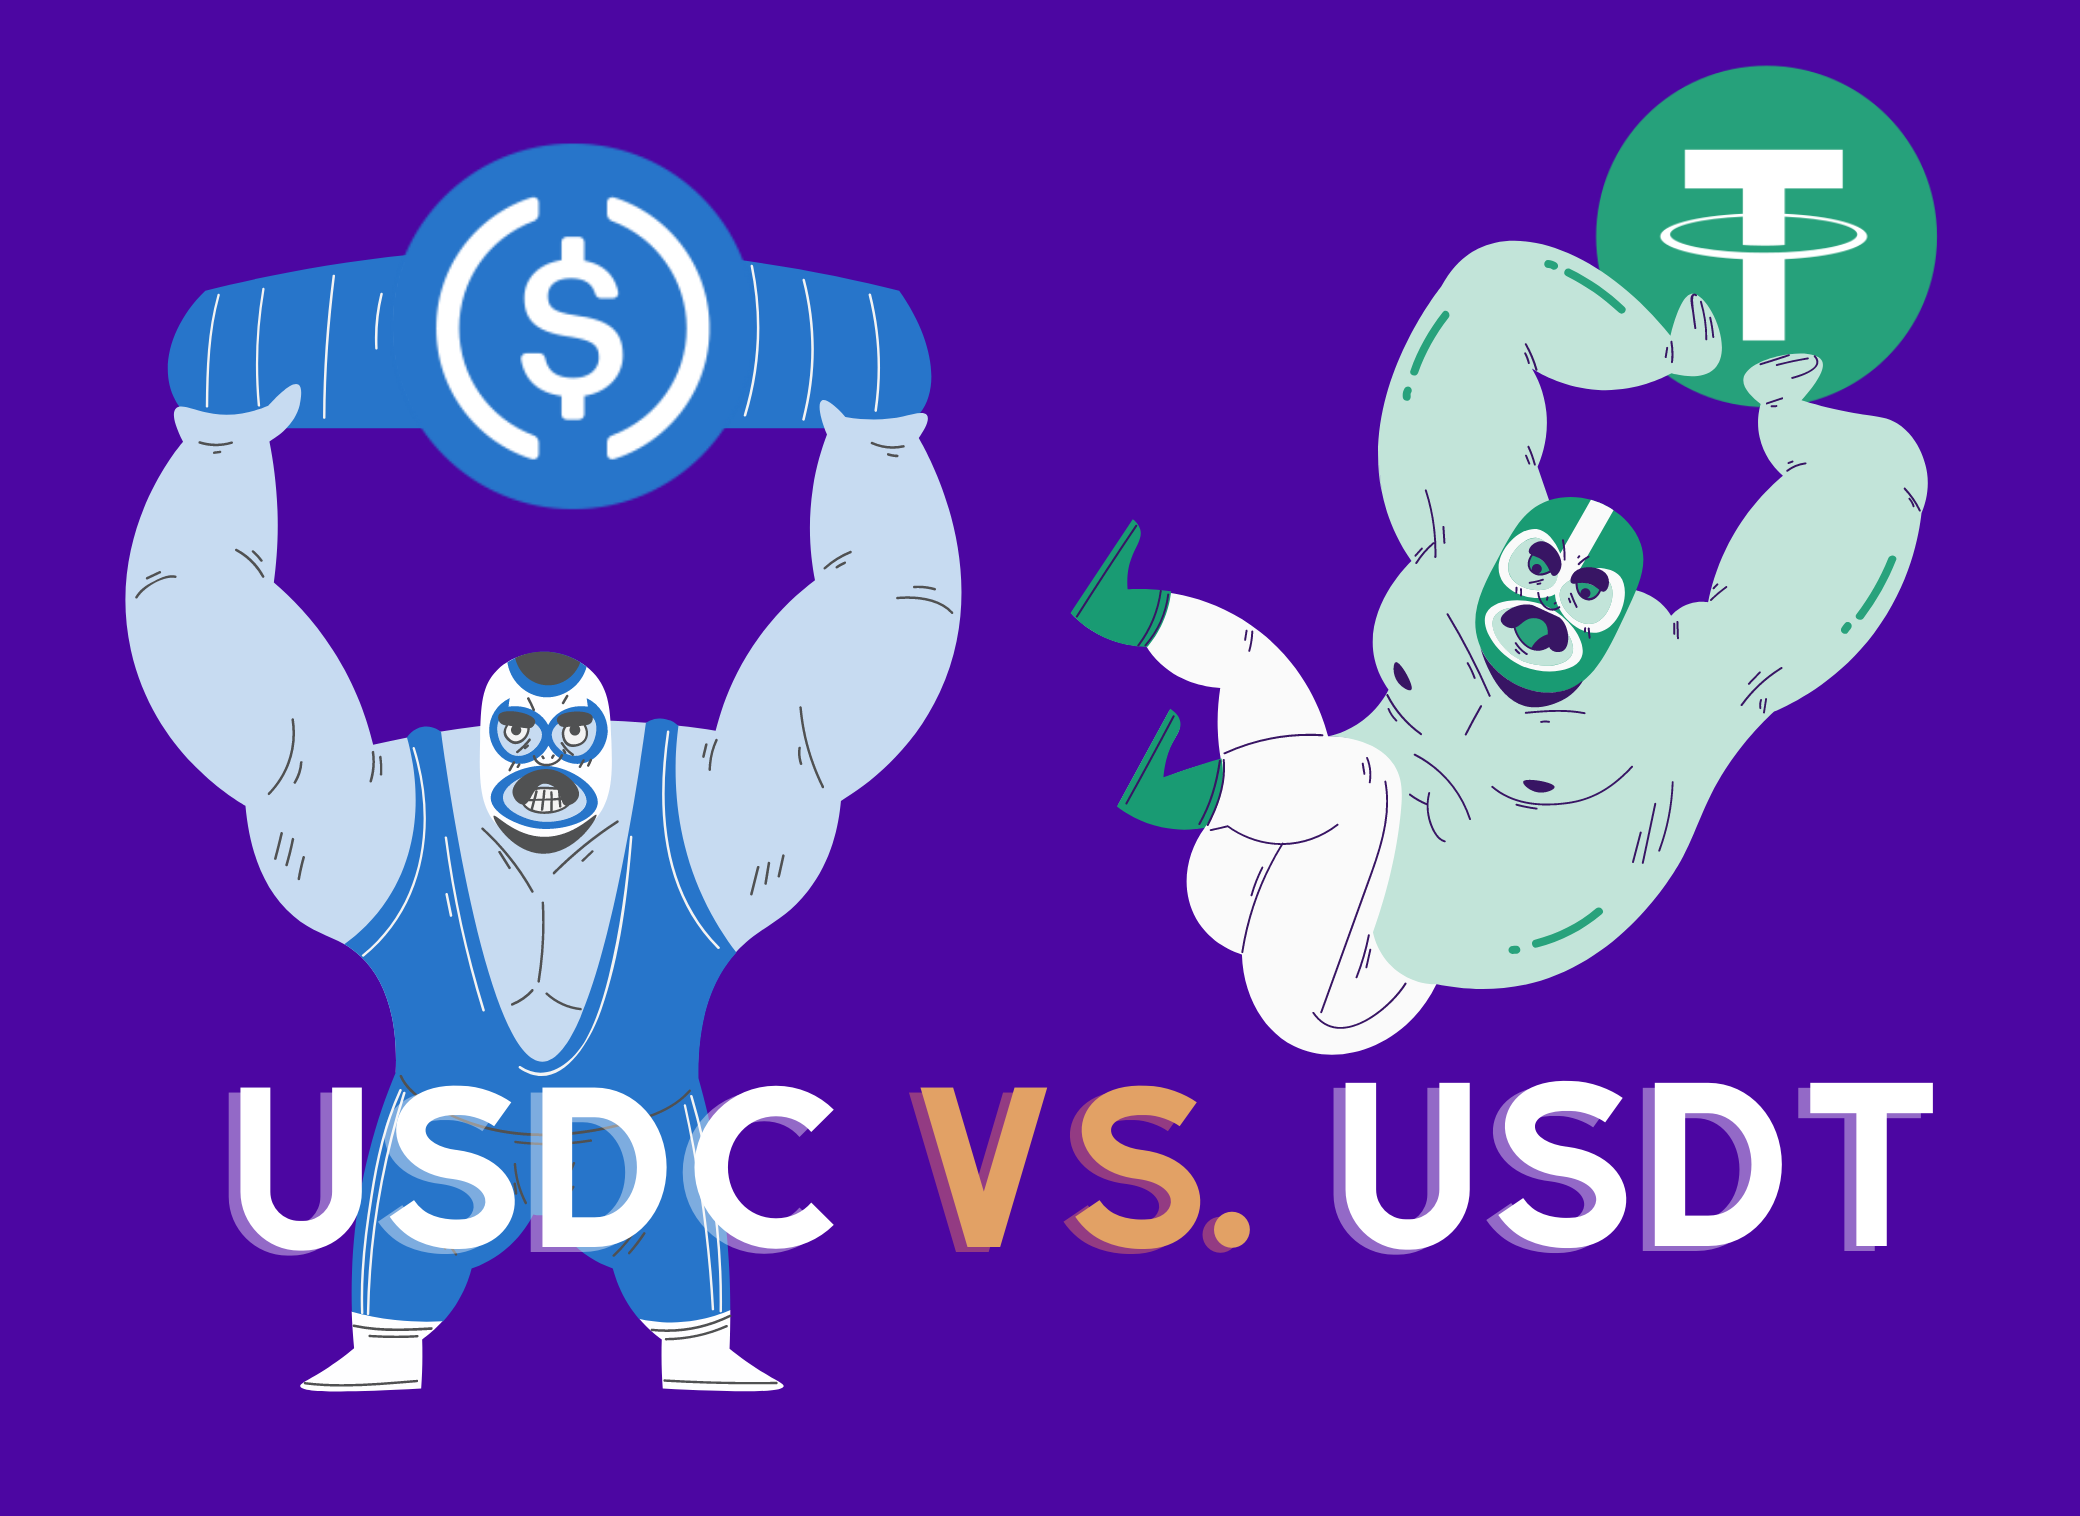 USDC vs. USDT: Which stablecoin should you use?